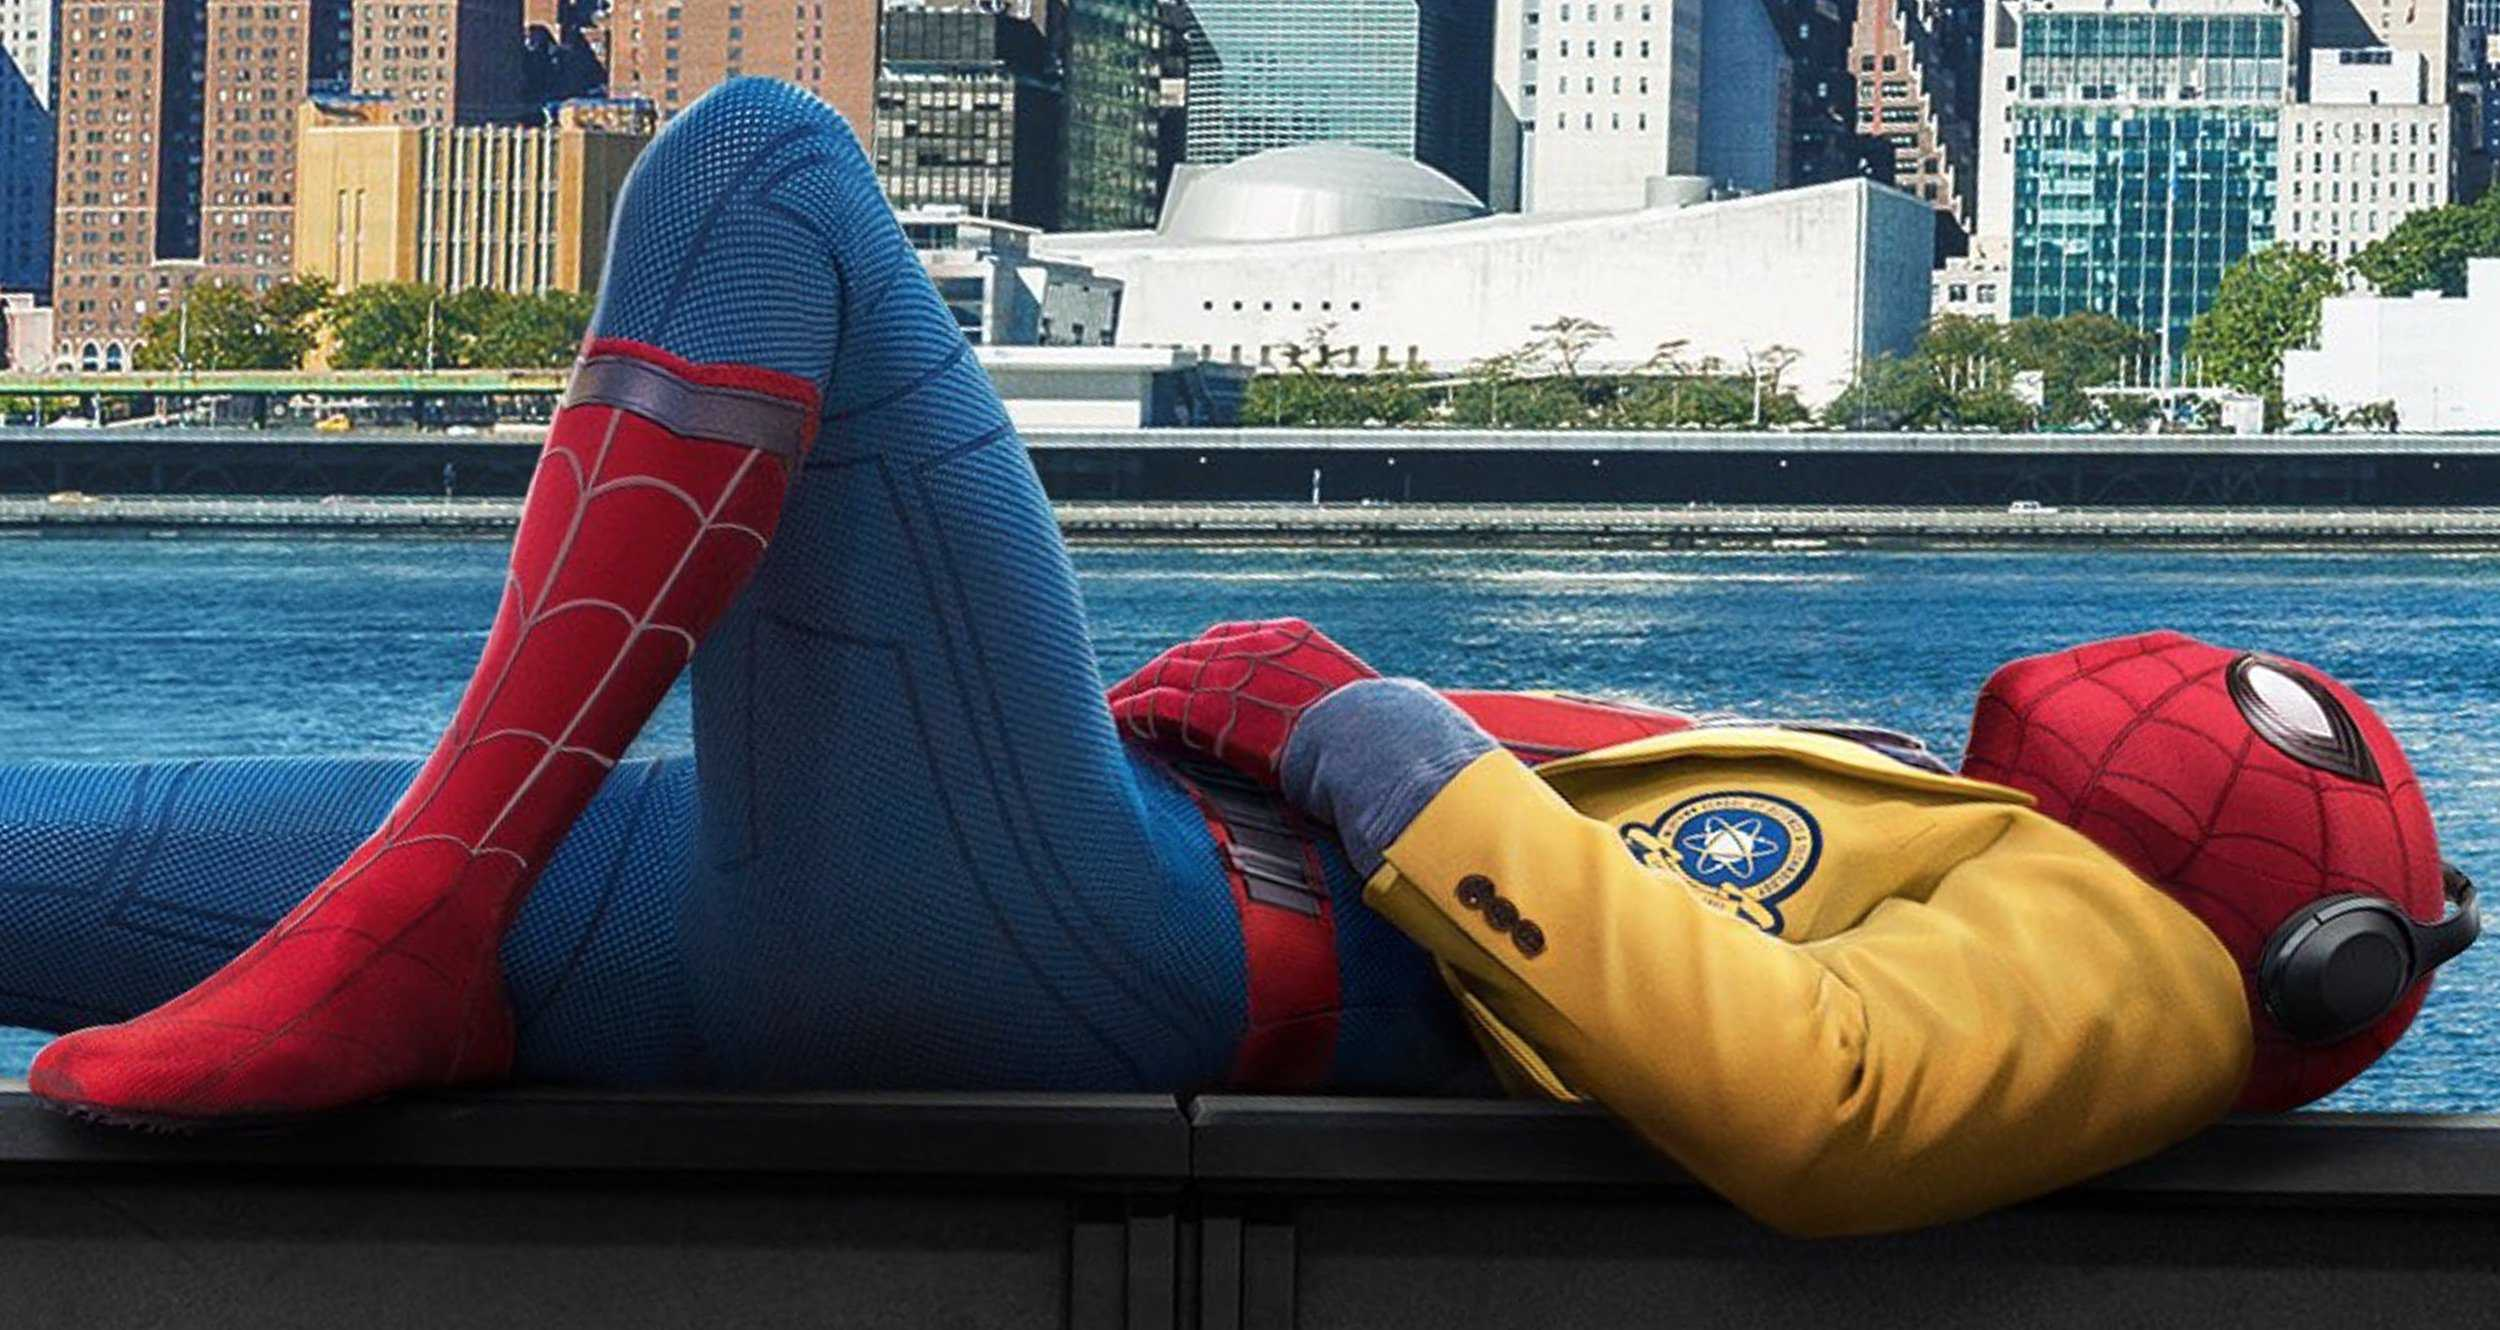 39 homework can wait the city can 39 t 39 in new spider man - New spiderman movie wallpaper ...